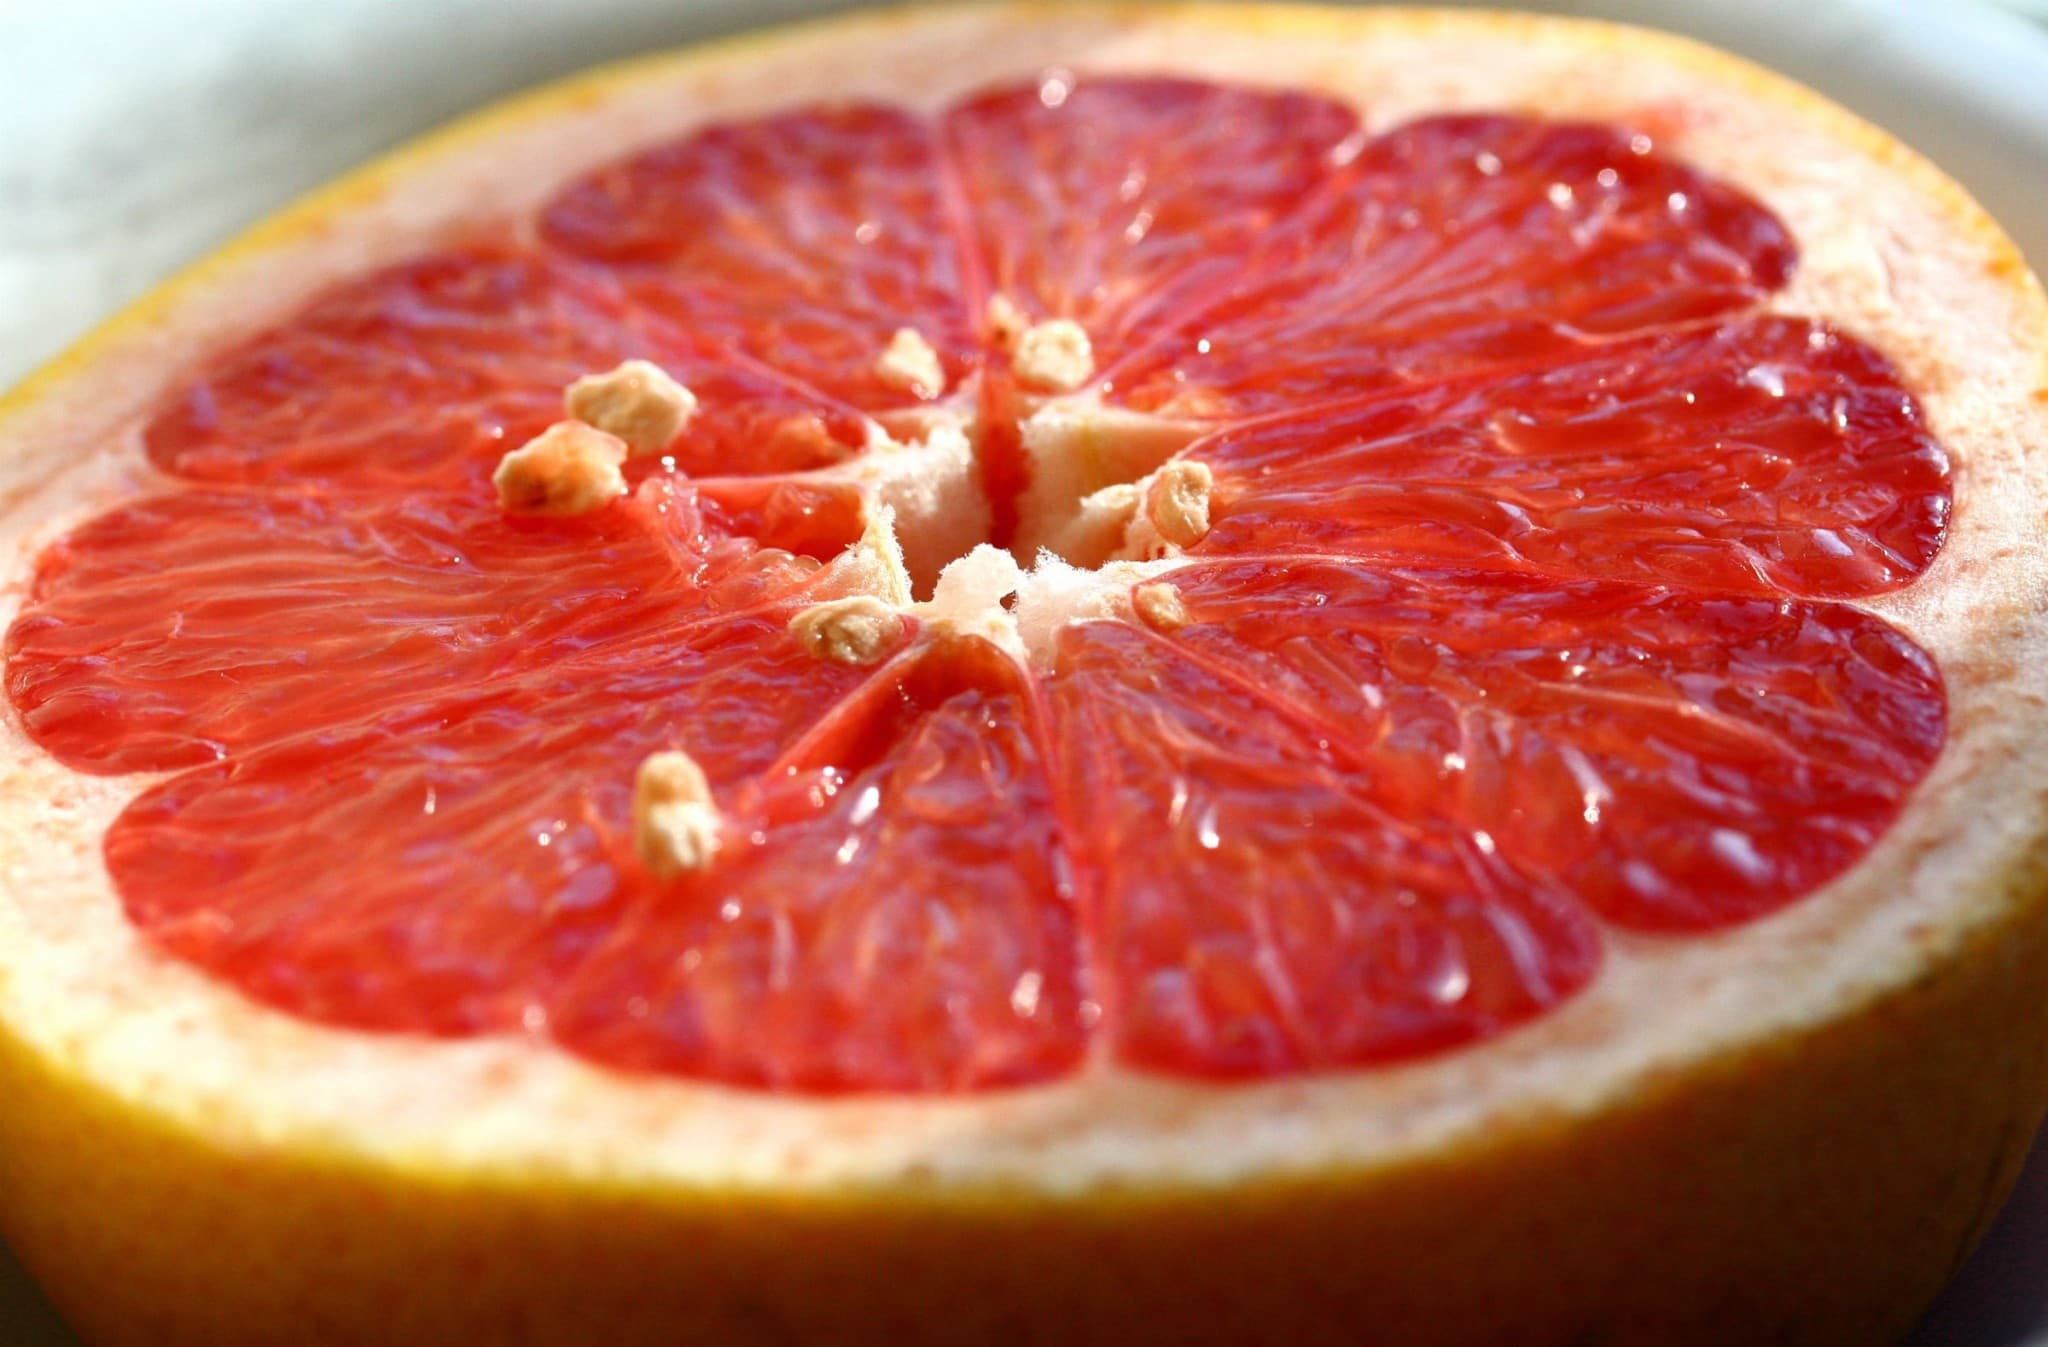 The Happy Bajan Happenstance That Gave The World The Grapefruit